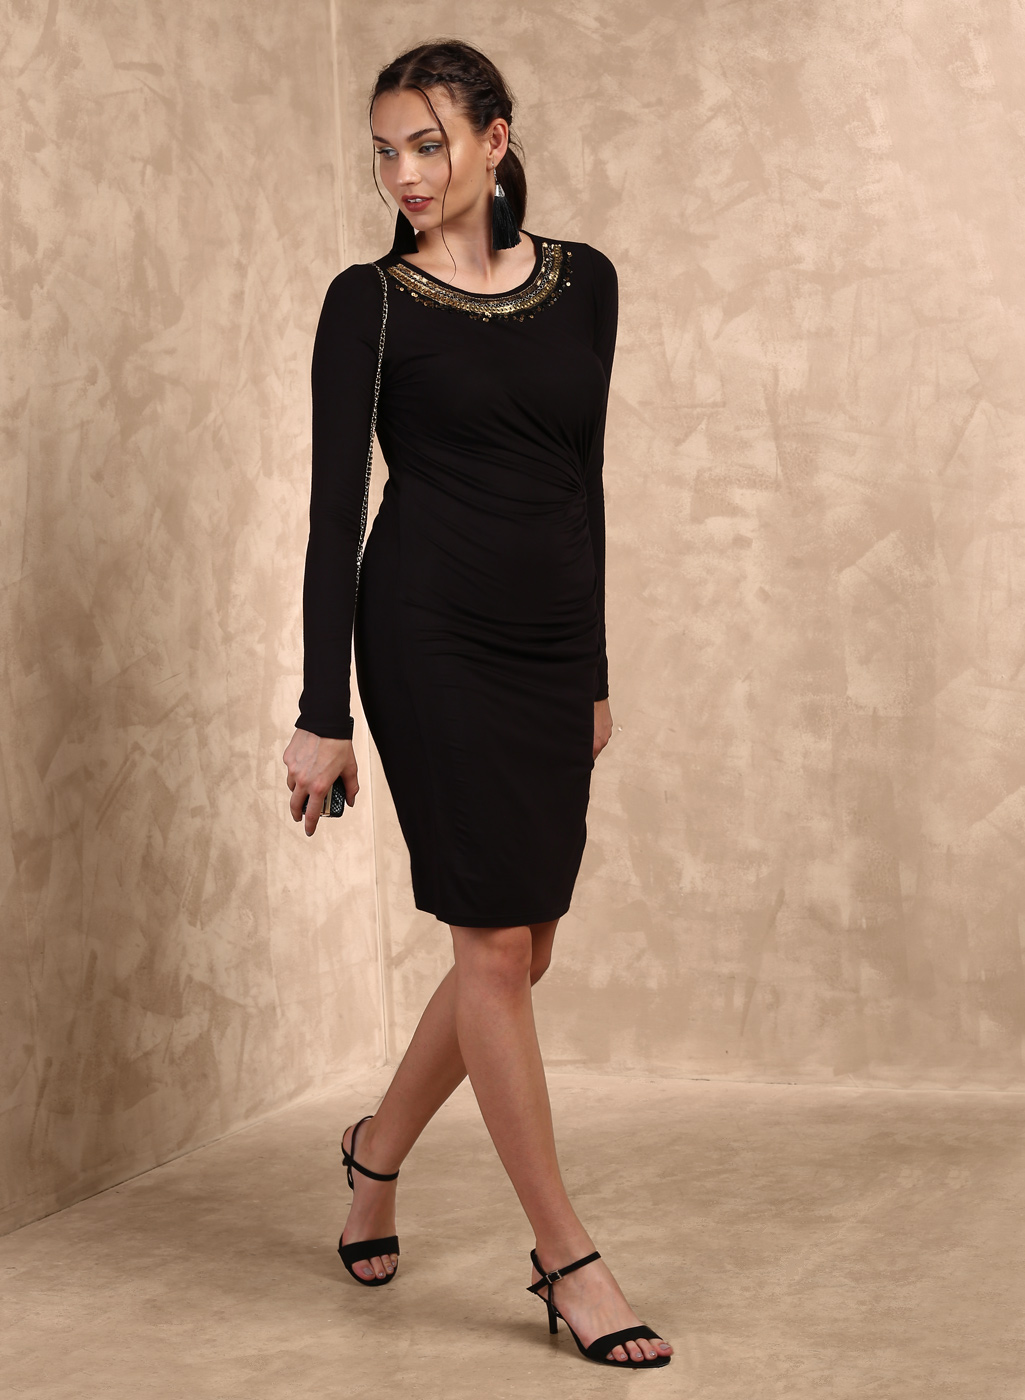 Black Embellished Bodycon Dress Price in India